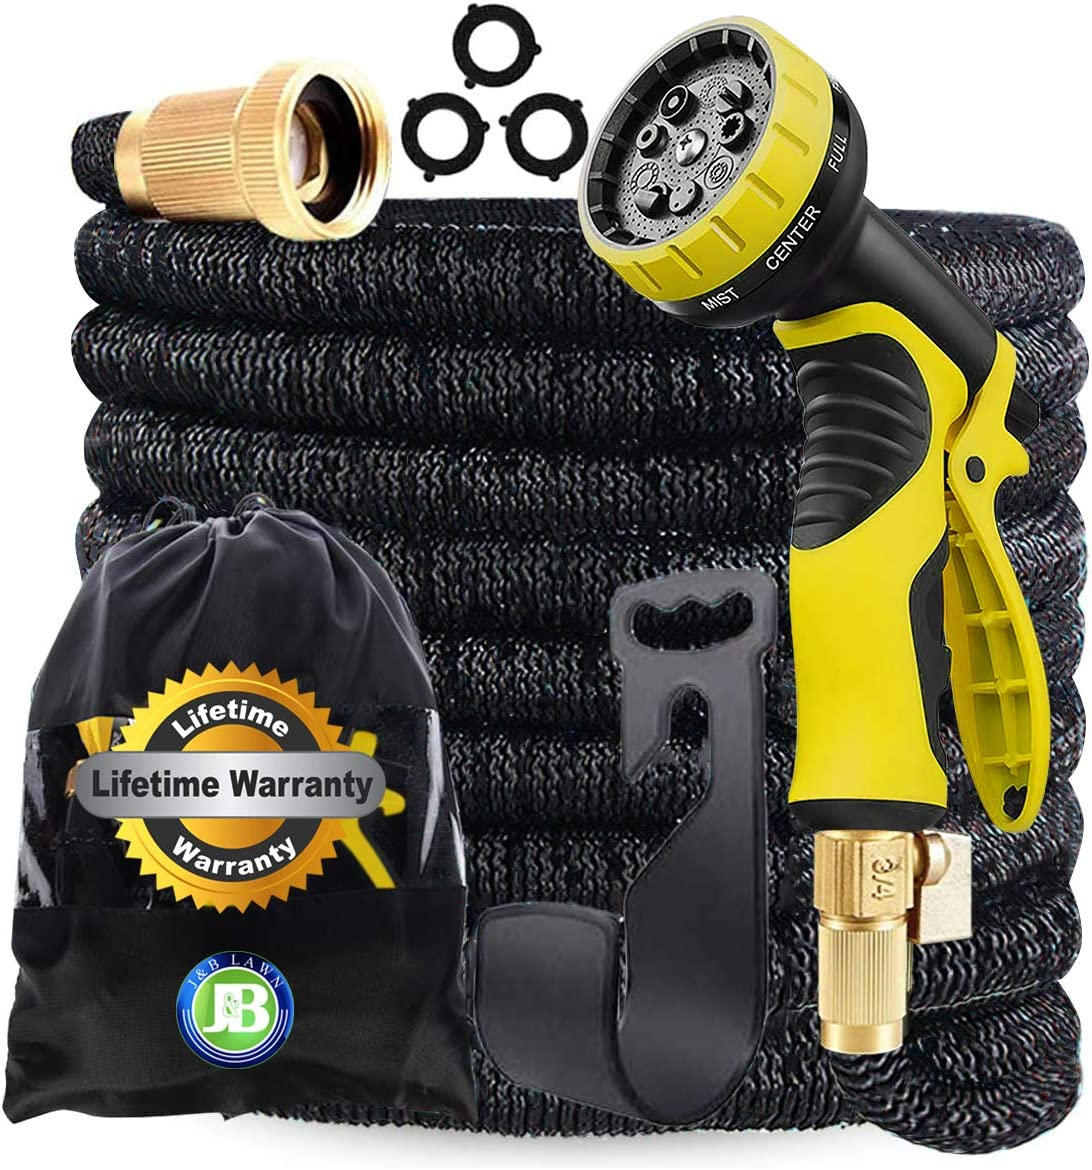 J&B XpandaHose 75ft Expandable Garden Hose with Holder - Heavy Duty Superior Strength 3750D - 4 -Layer Latex Core - Extra Strong Brass Connectors and 10 Spray Nozzle w/Storage Bag (Black 75)